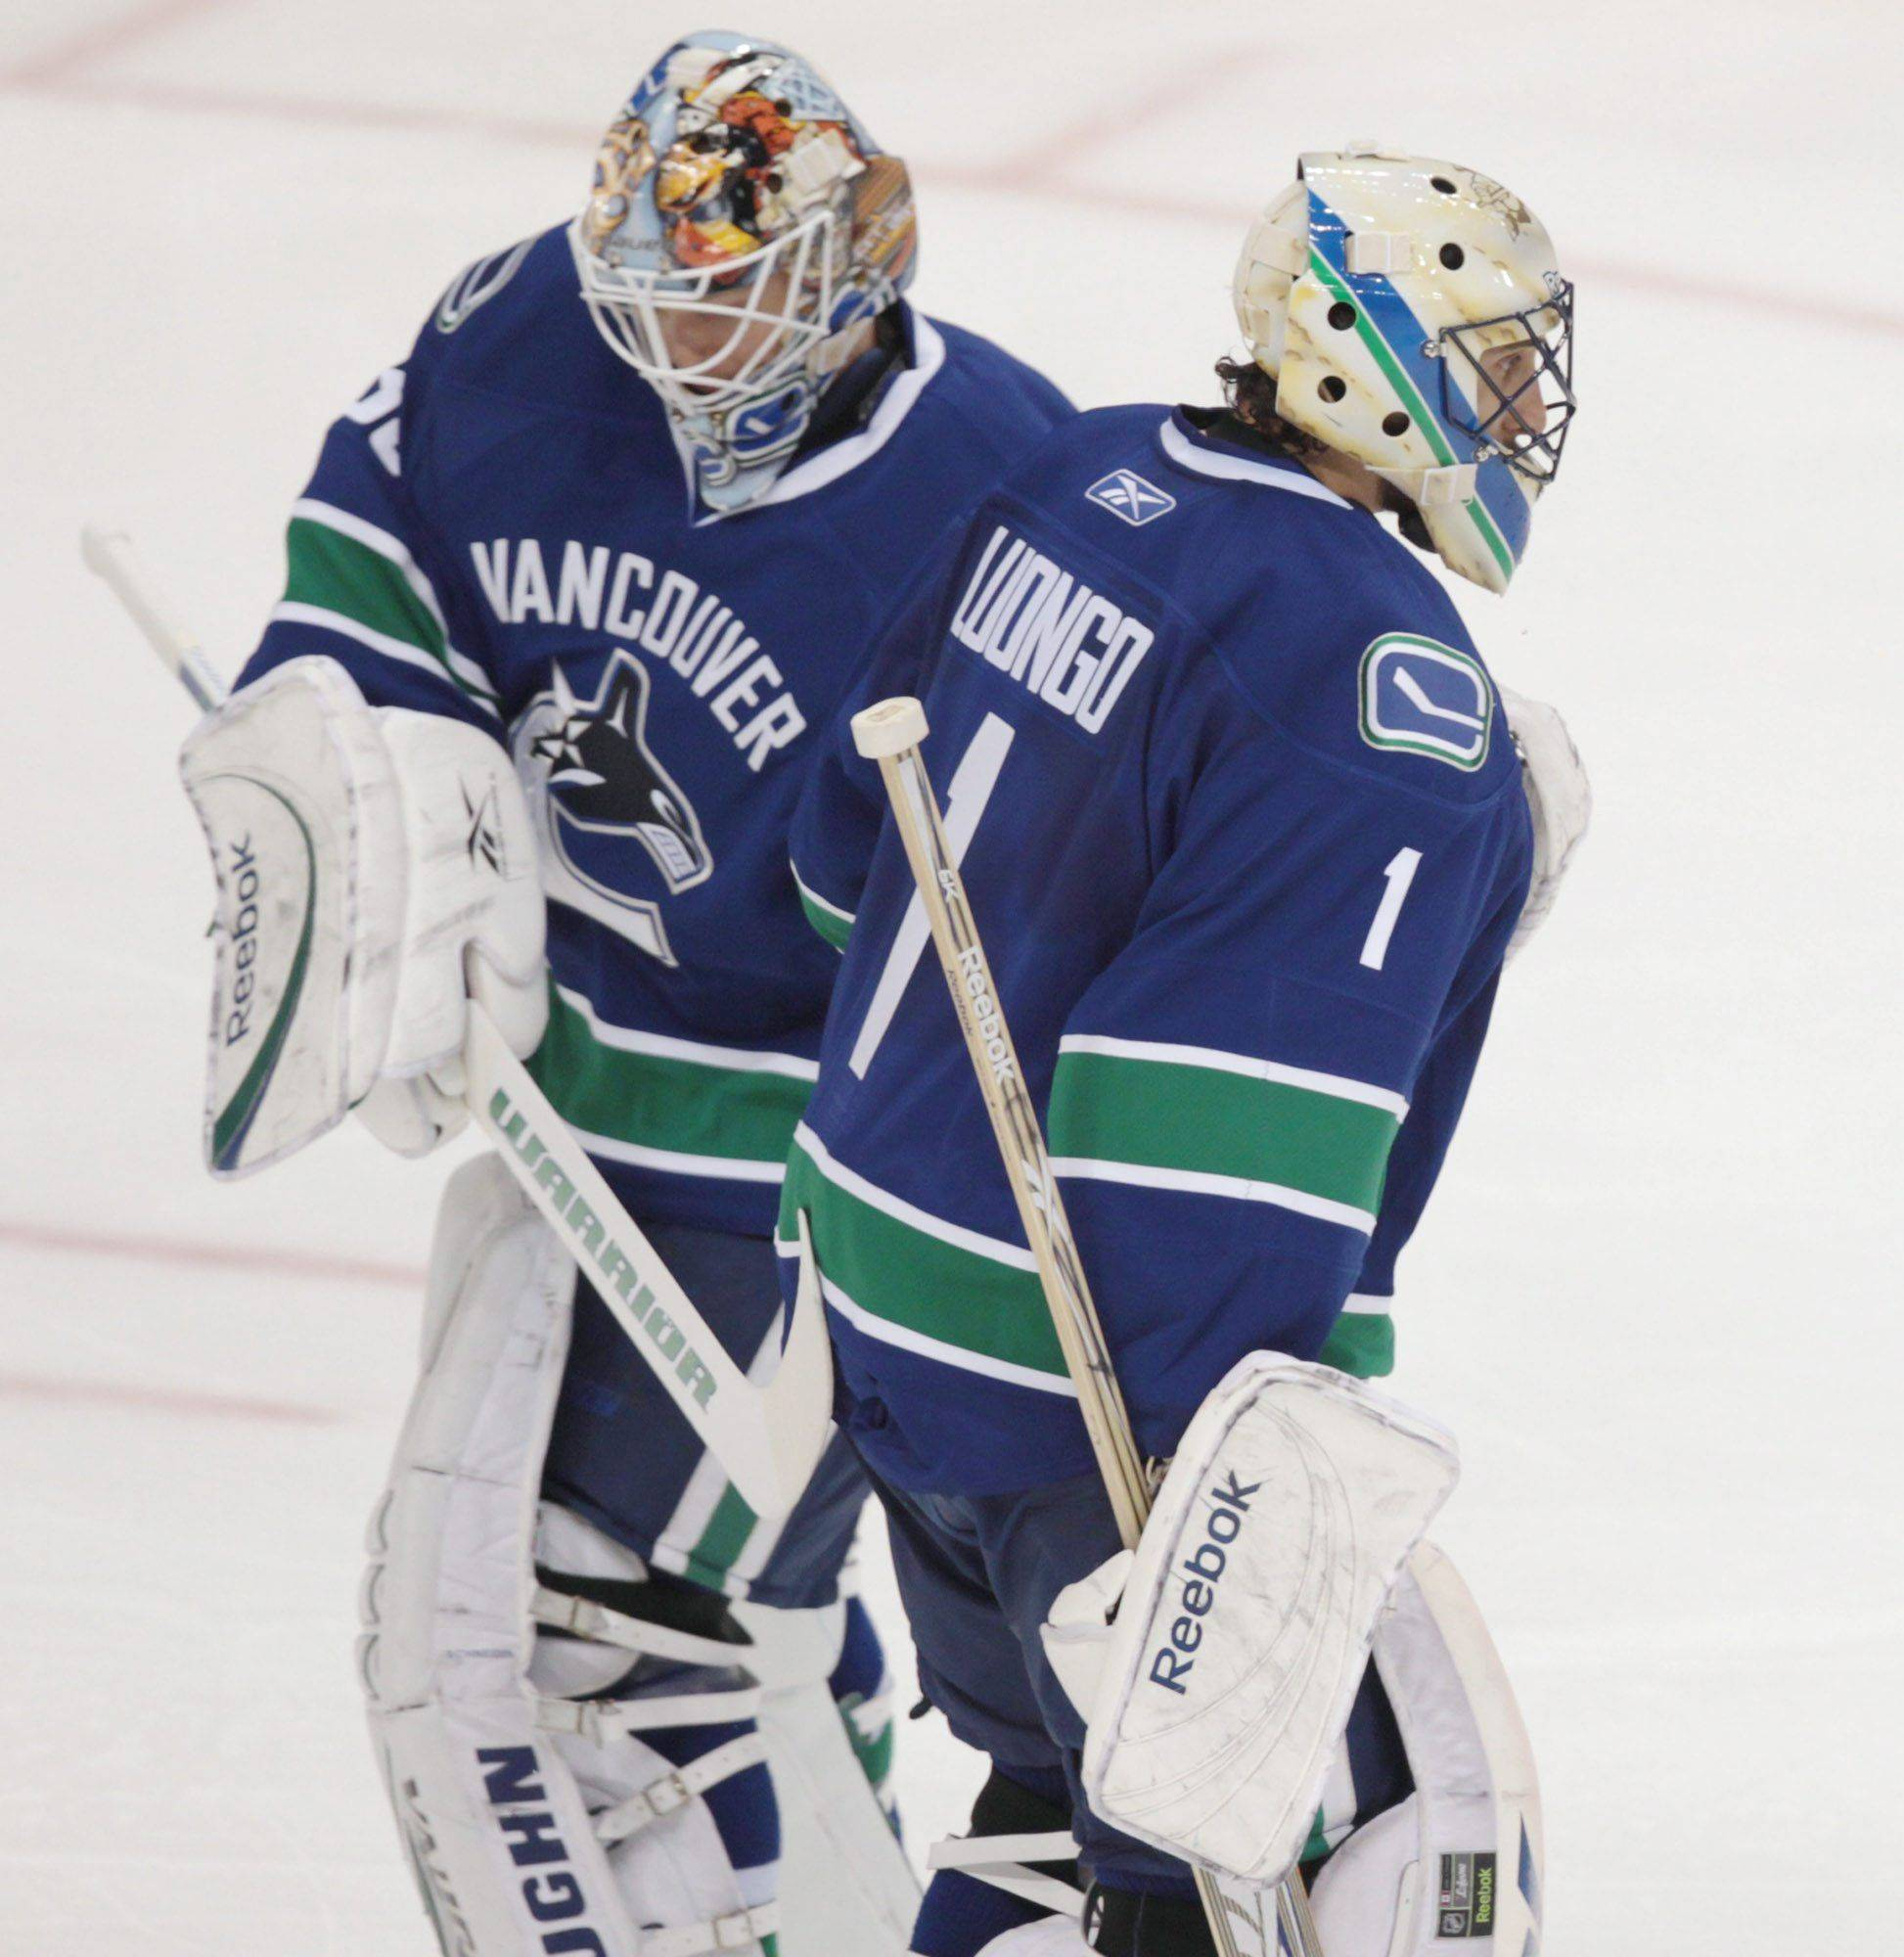 Vancouver Canucks' Roberto Luongo, right, leaves the ice and is replaced by Cory Schneider, left, during the second period against the Chicago Blackhawks in Game 5 of an NHL hockey Stanley Cup playoffs first-round series in Vancouver, British Columbia, on Thursday, April 21, 2011.